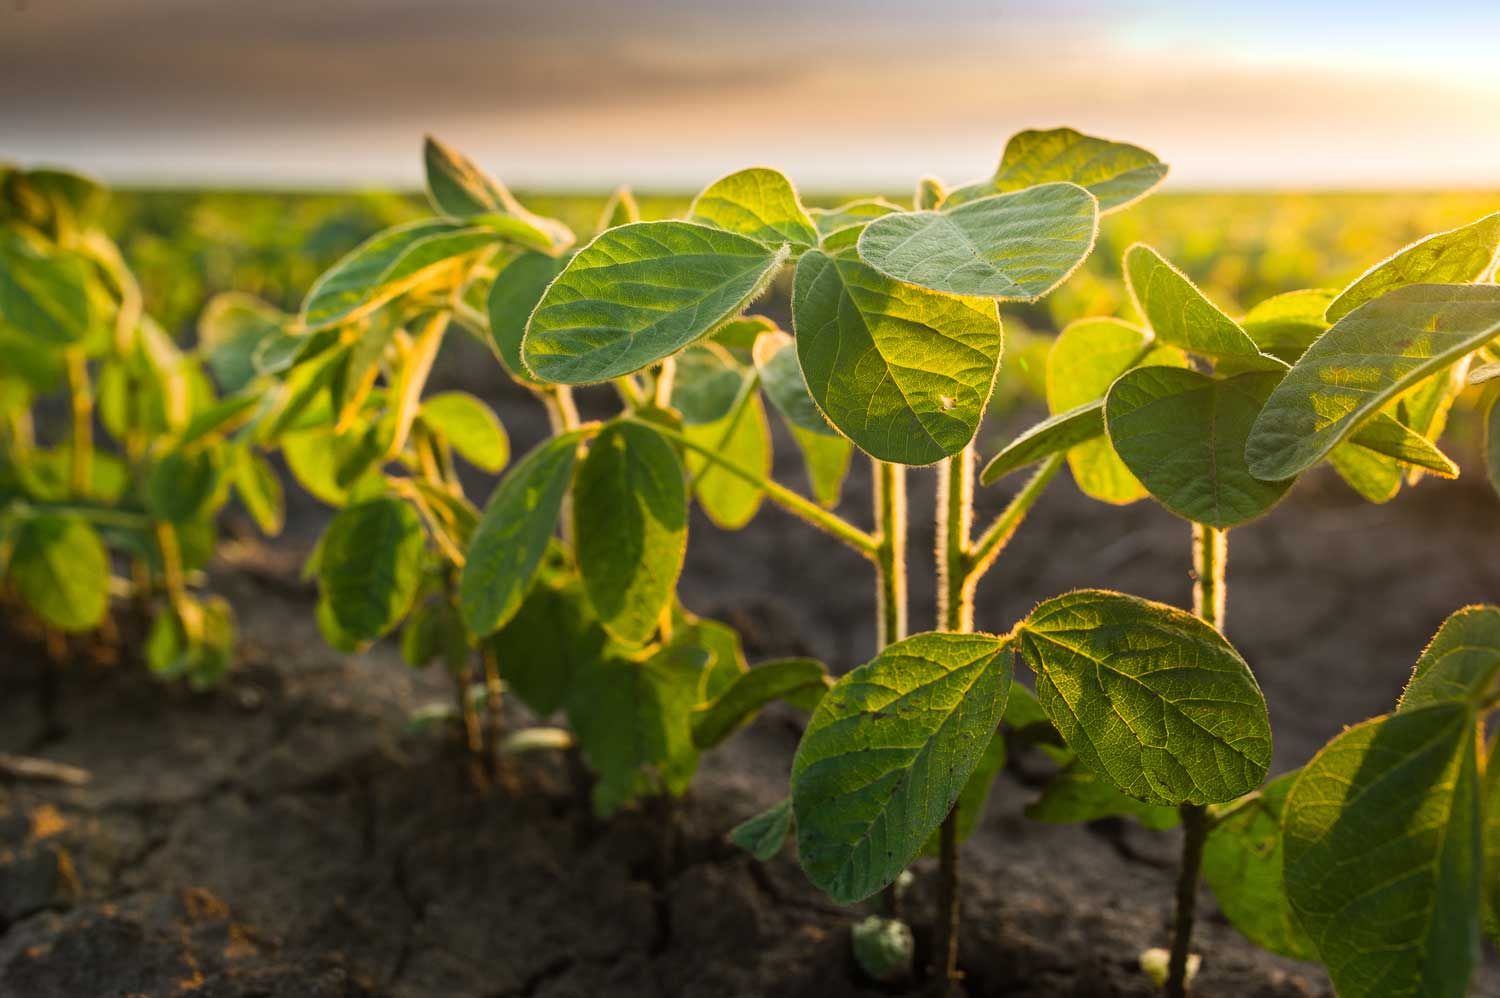 soybean plants growing